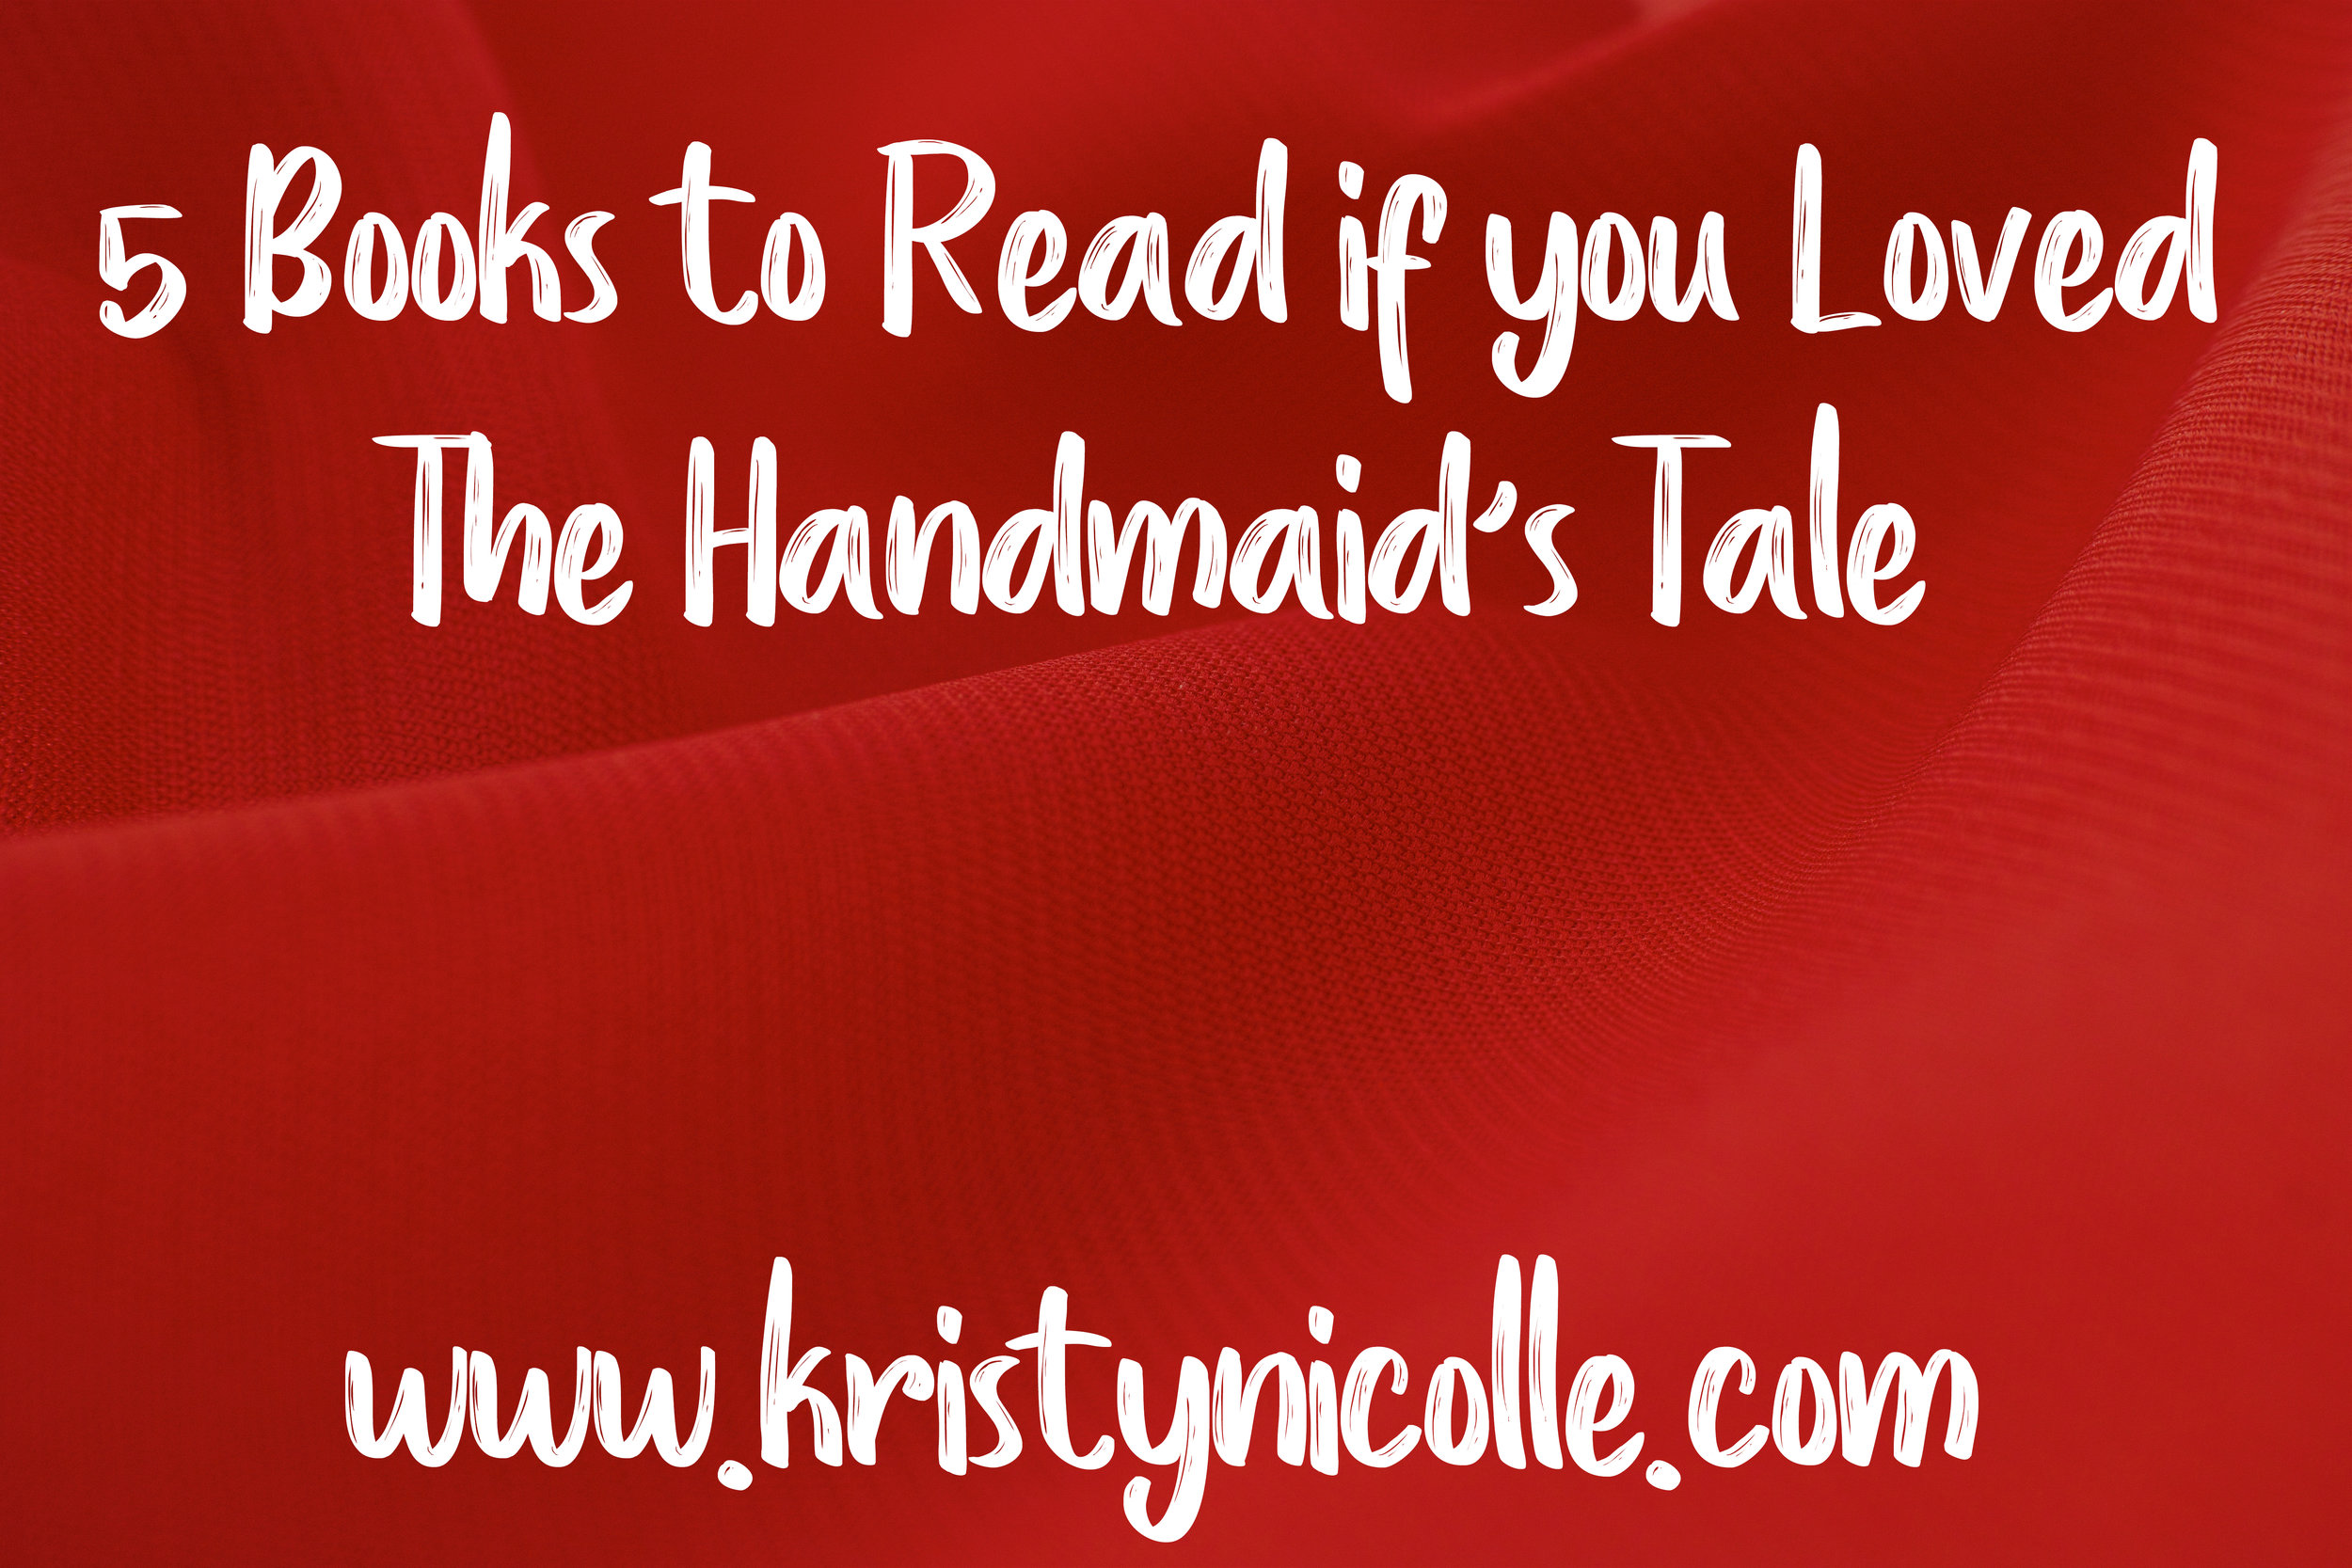 5 BOOKS TO READ IF YOU LOVED THE HANDMAIDS TALE